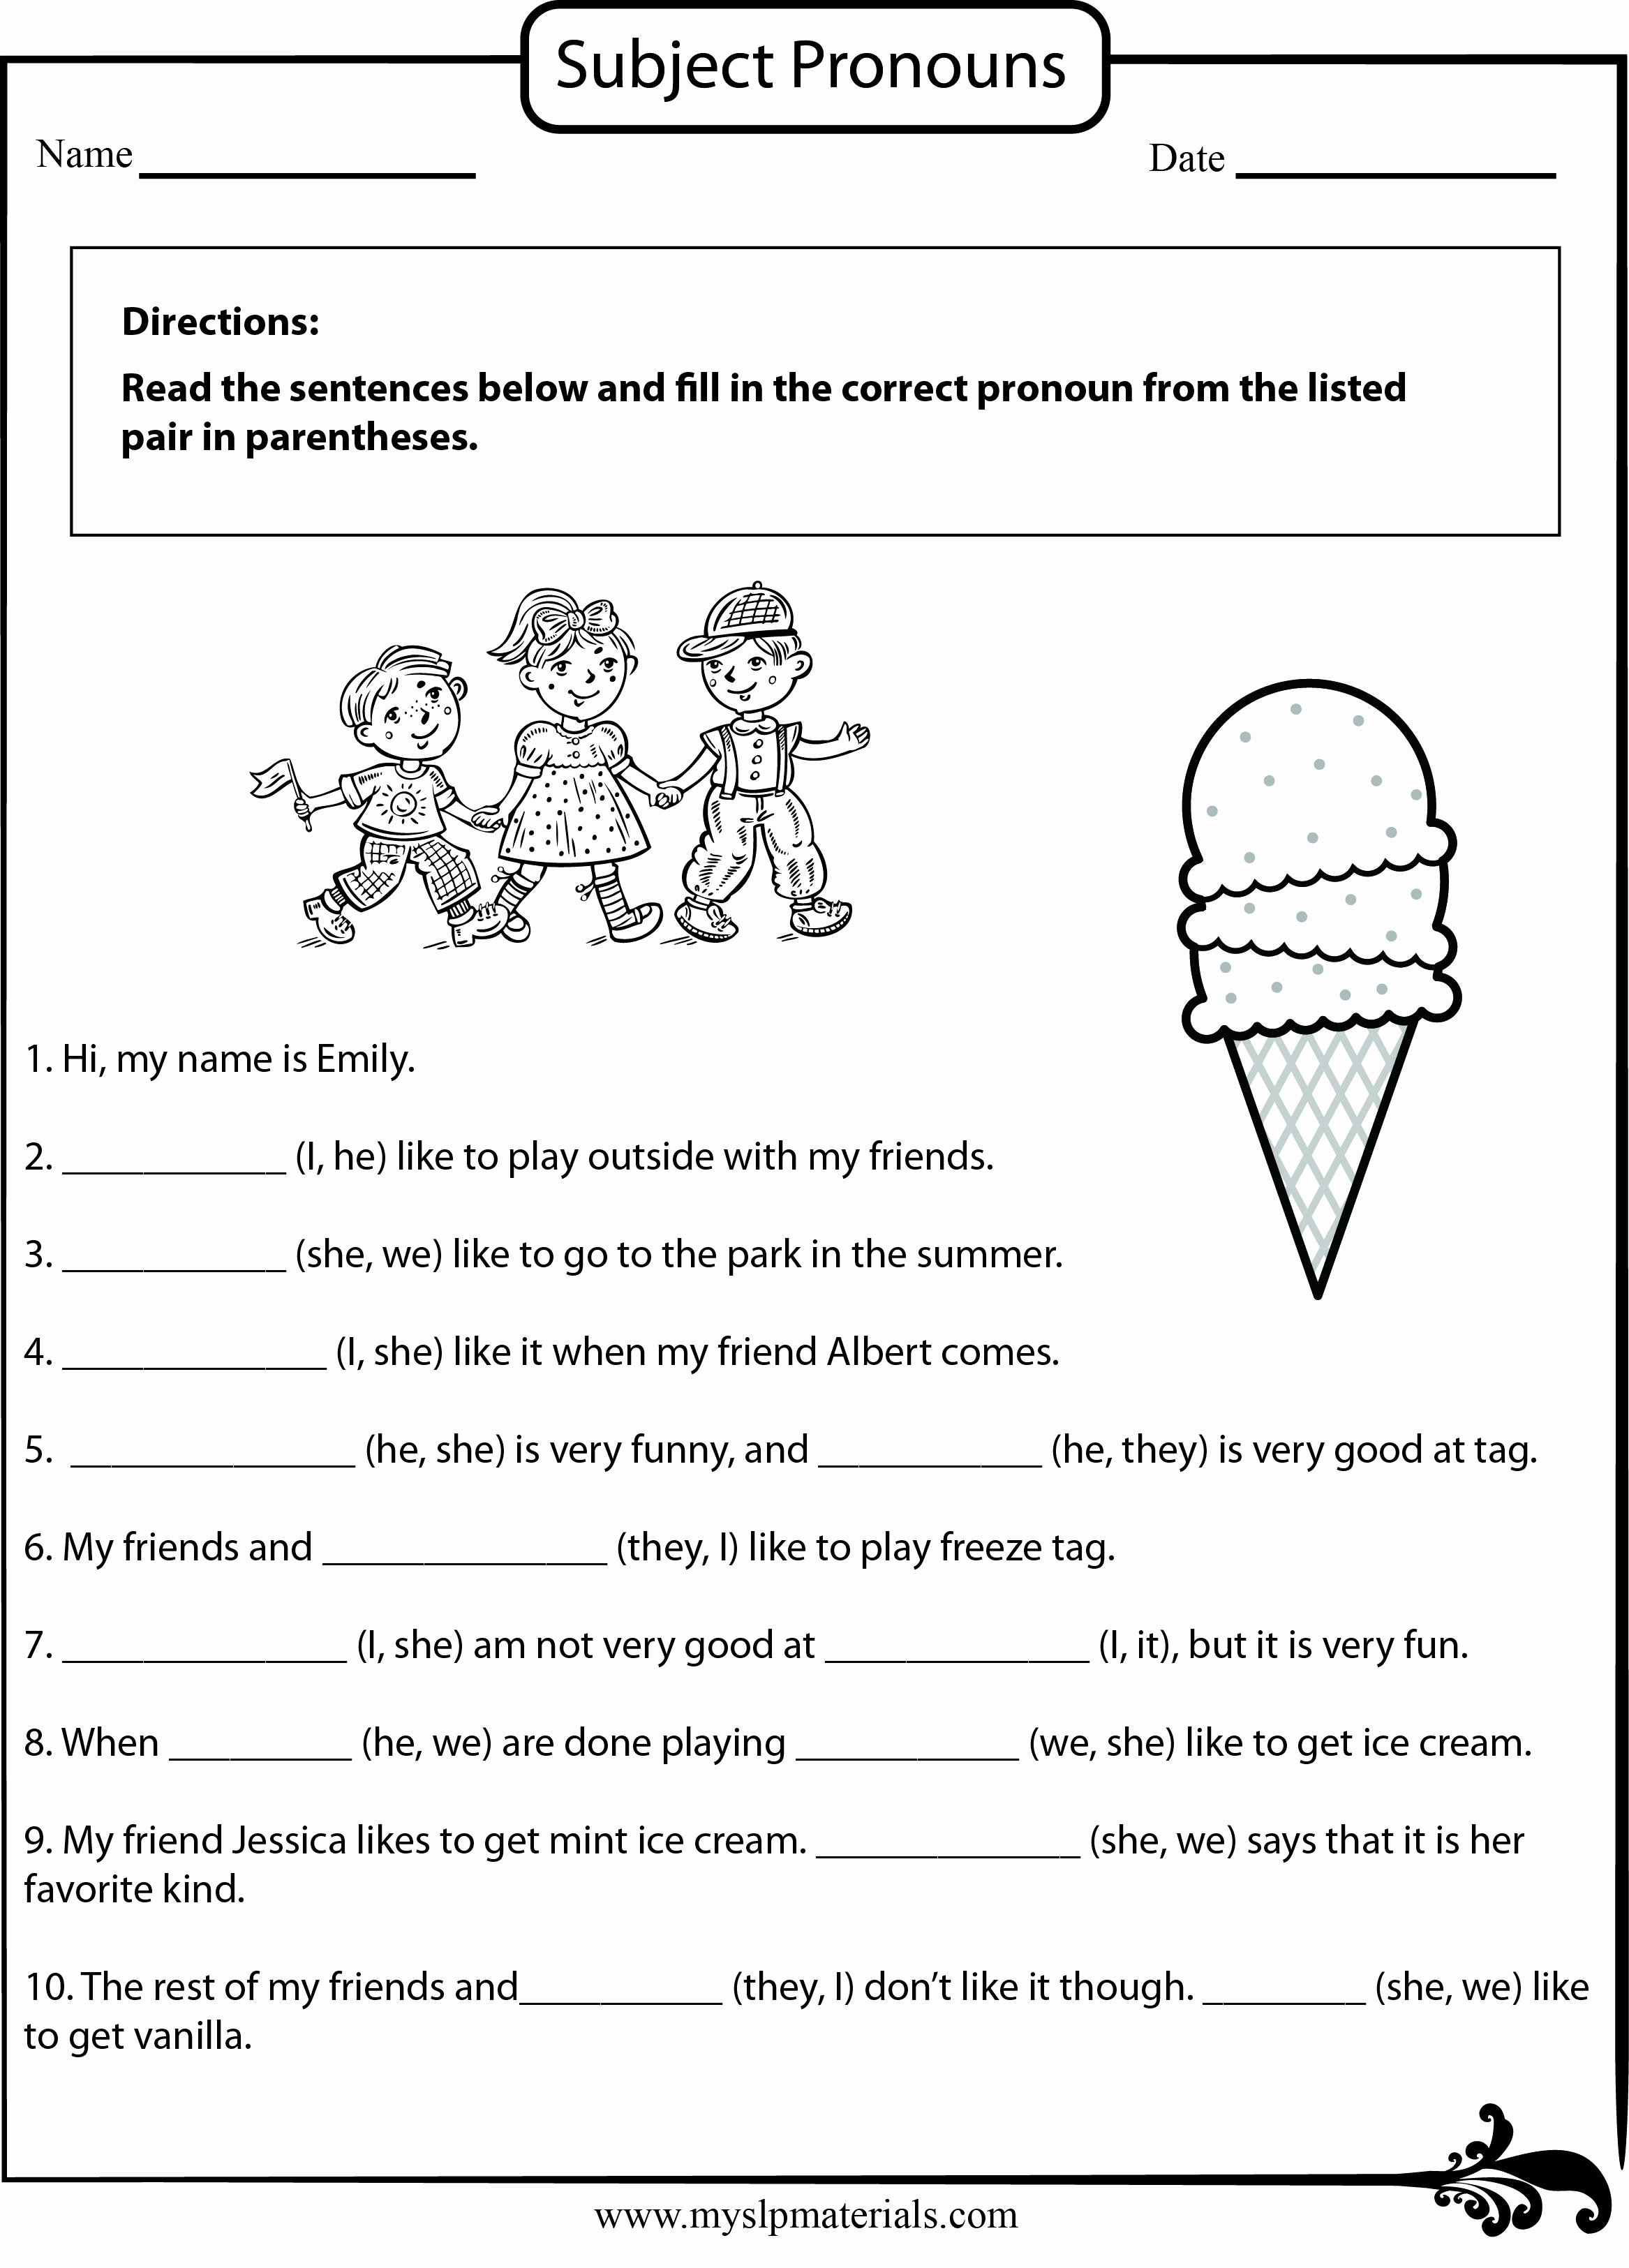 English Worksheet for Grade 2 Best Of Pin by Myslpmaterials On Myslpmaterials Free